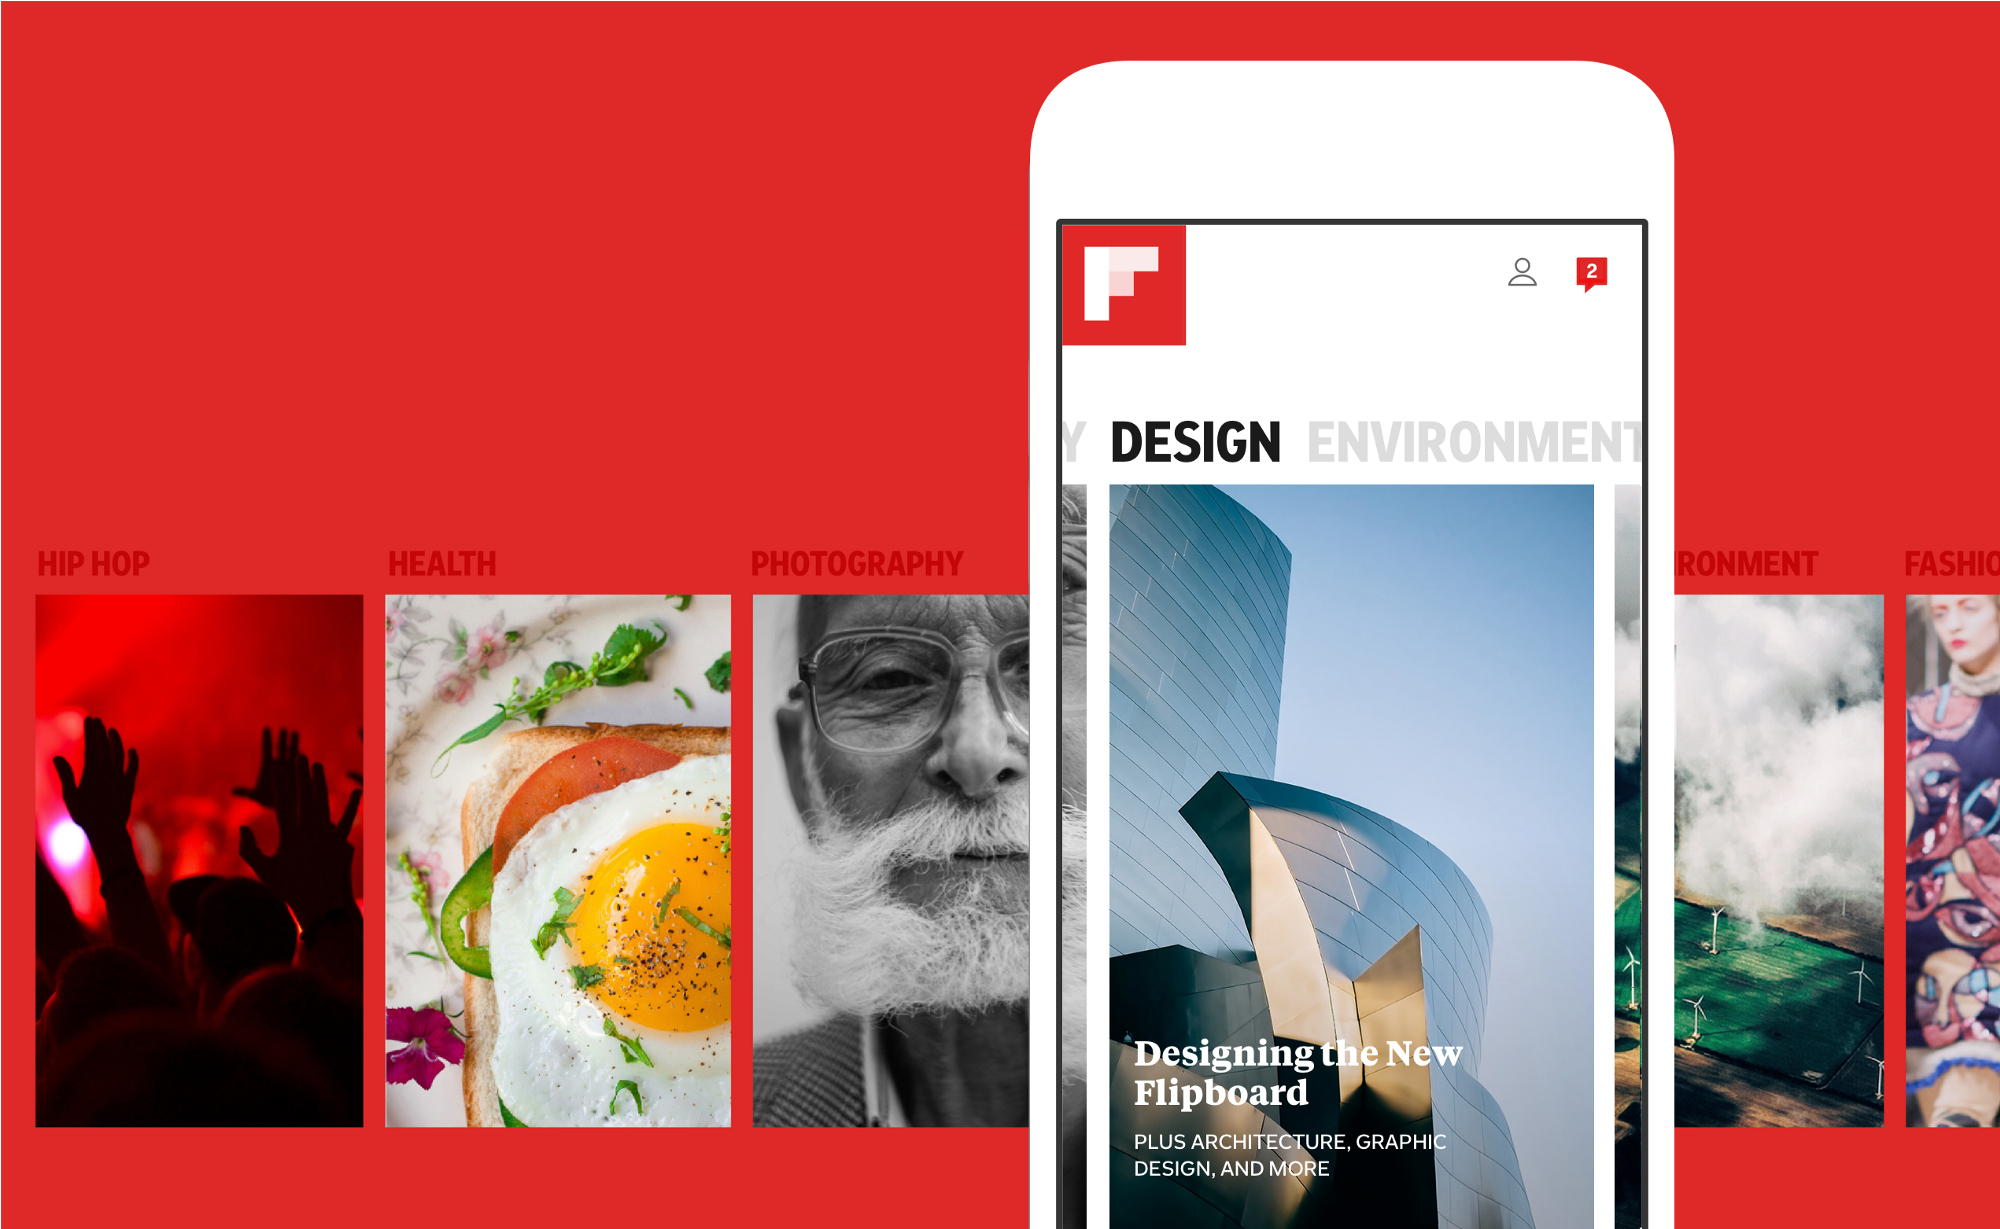 Designing the new Flipboard